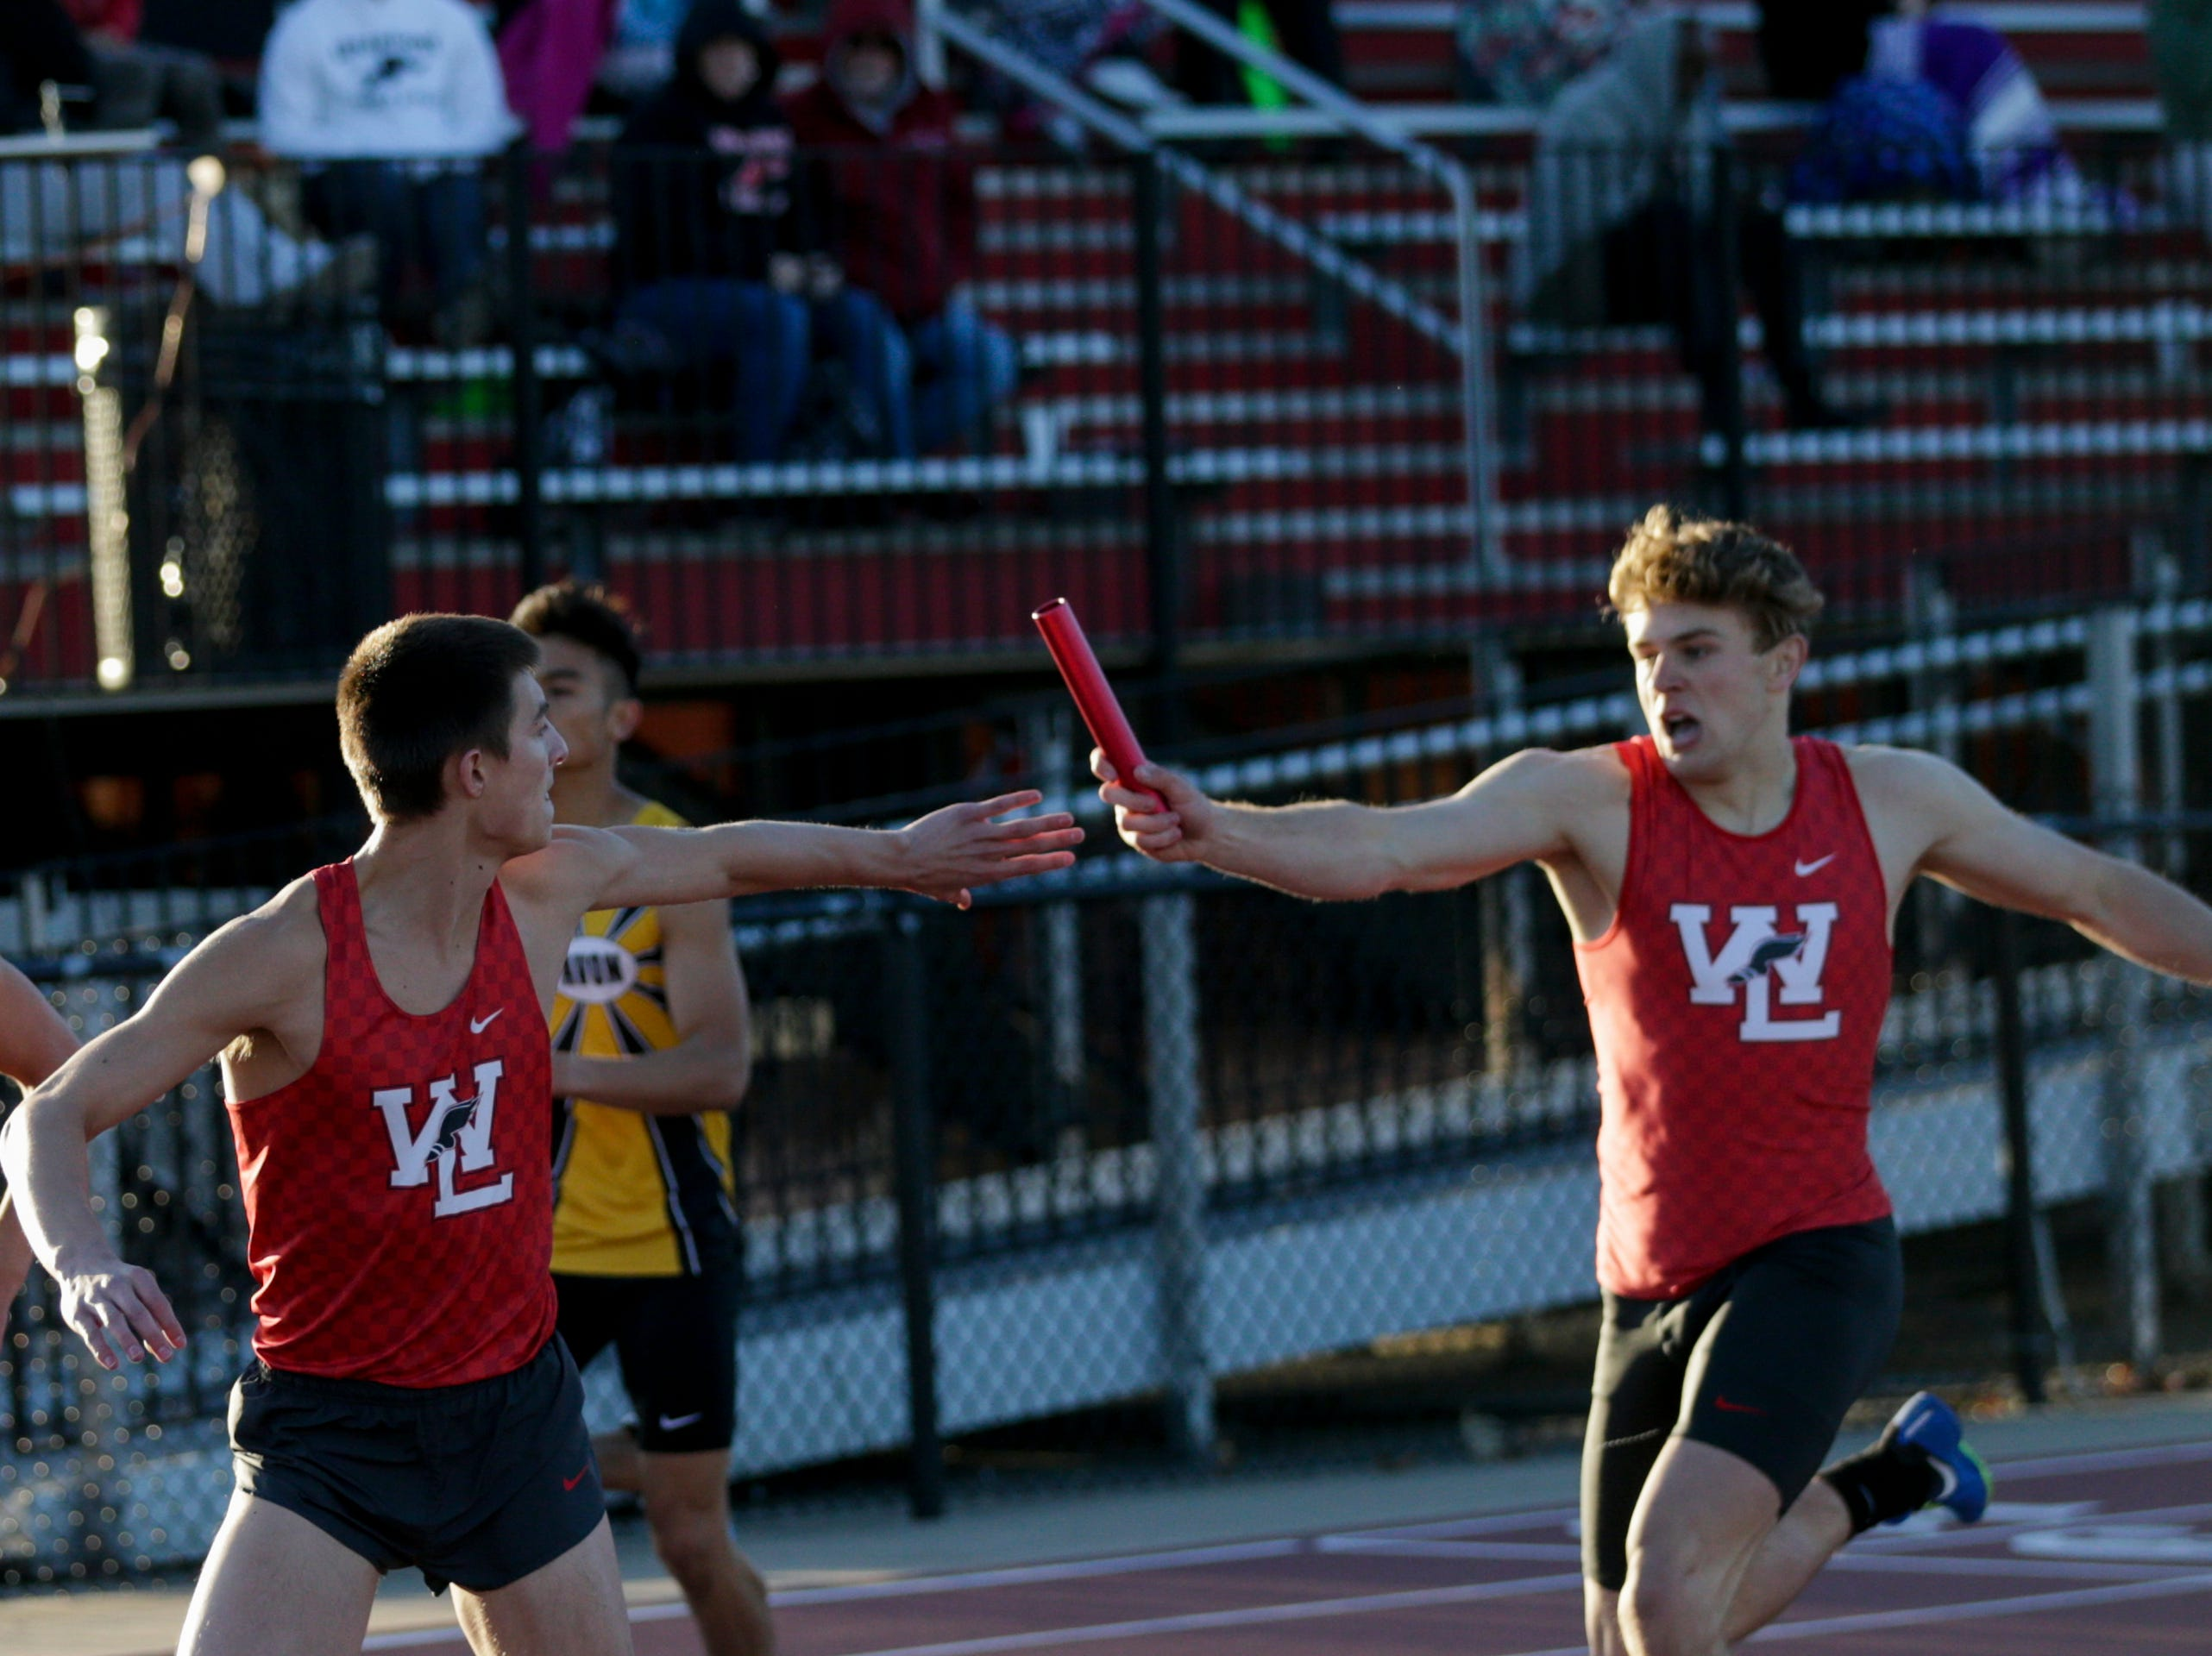 Western Lafayette competes in the men's 4x400 meter relay during the 2019 Sprinters Showcase, Friday, April 12, 2019, at Lafayette Jeff High School in Lafayette.